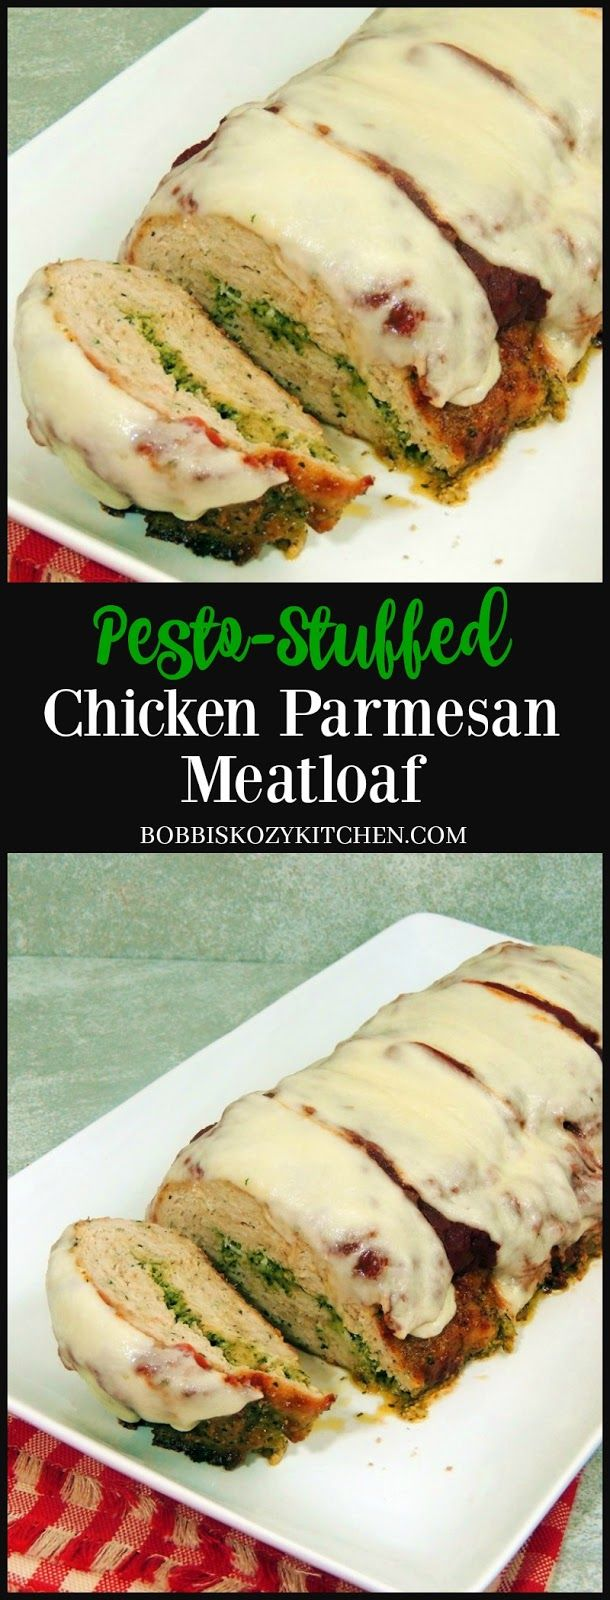 Pesto Stuffed Chicken Parmesan Meatloaf - All the delicious flavors of chicken parmesan wrapped into a meatloaf stuffed with pesto. It doesn't get much better than this! From www.bobbiskozykitchen.com